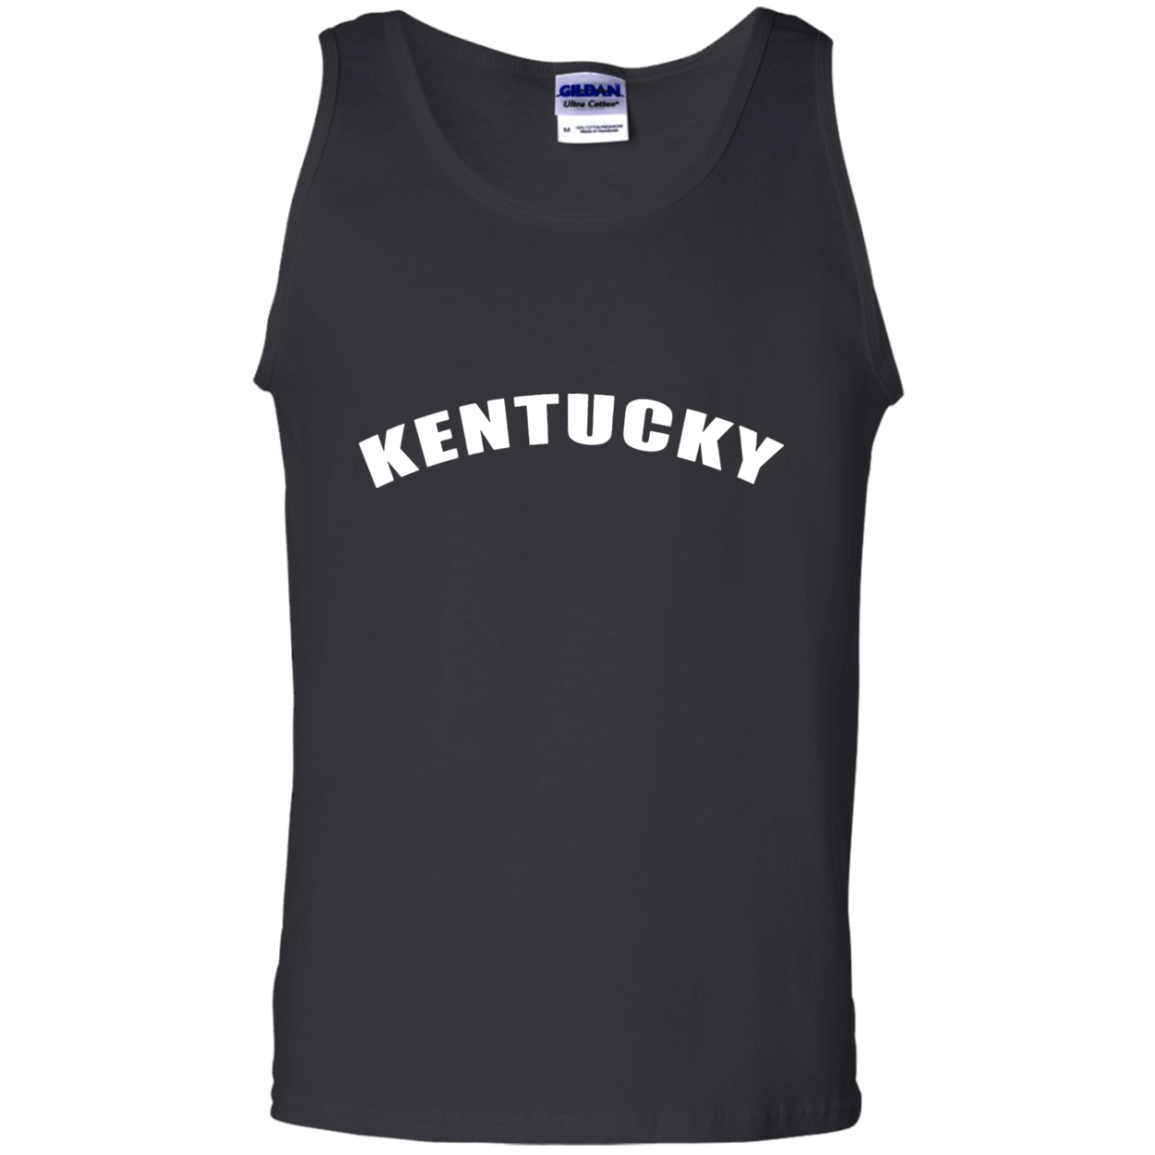 Classic Kentucky T Shirt I Gift Shirt for Men and Women